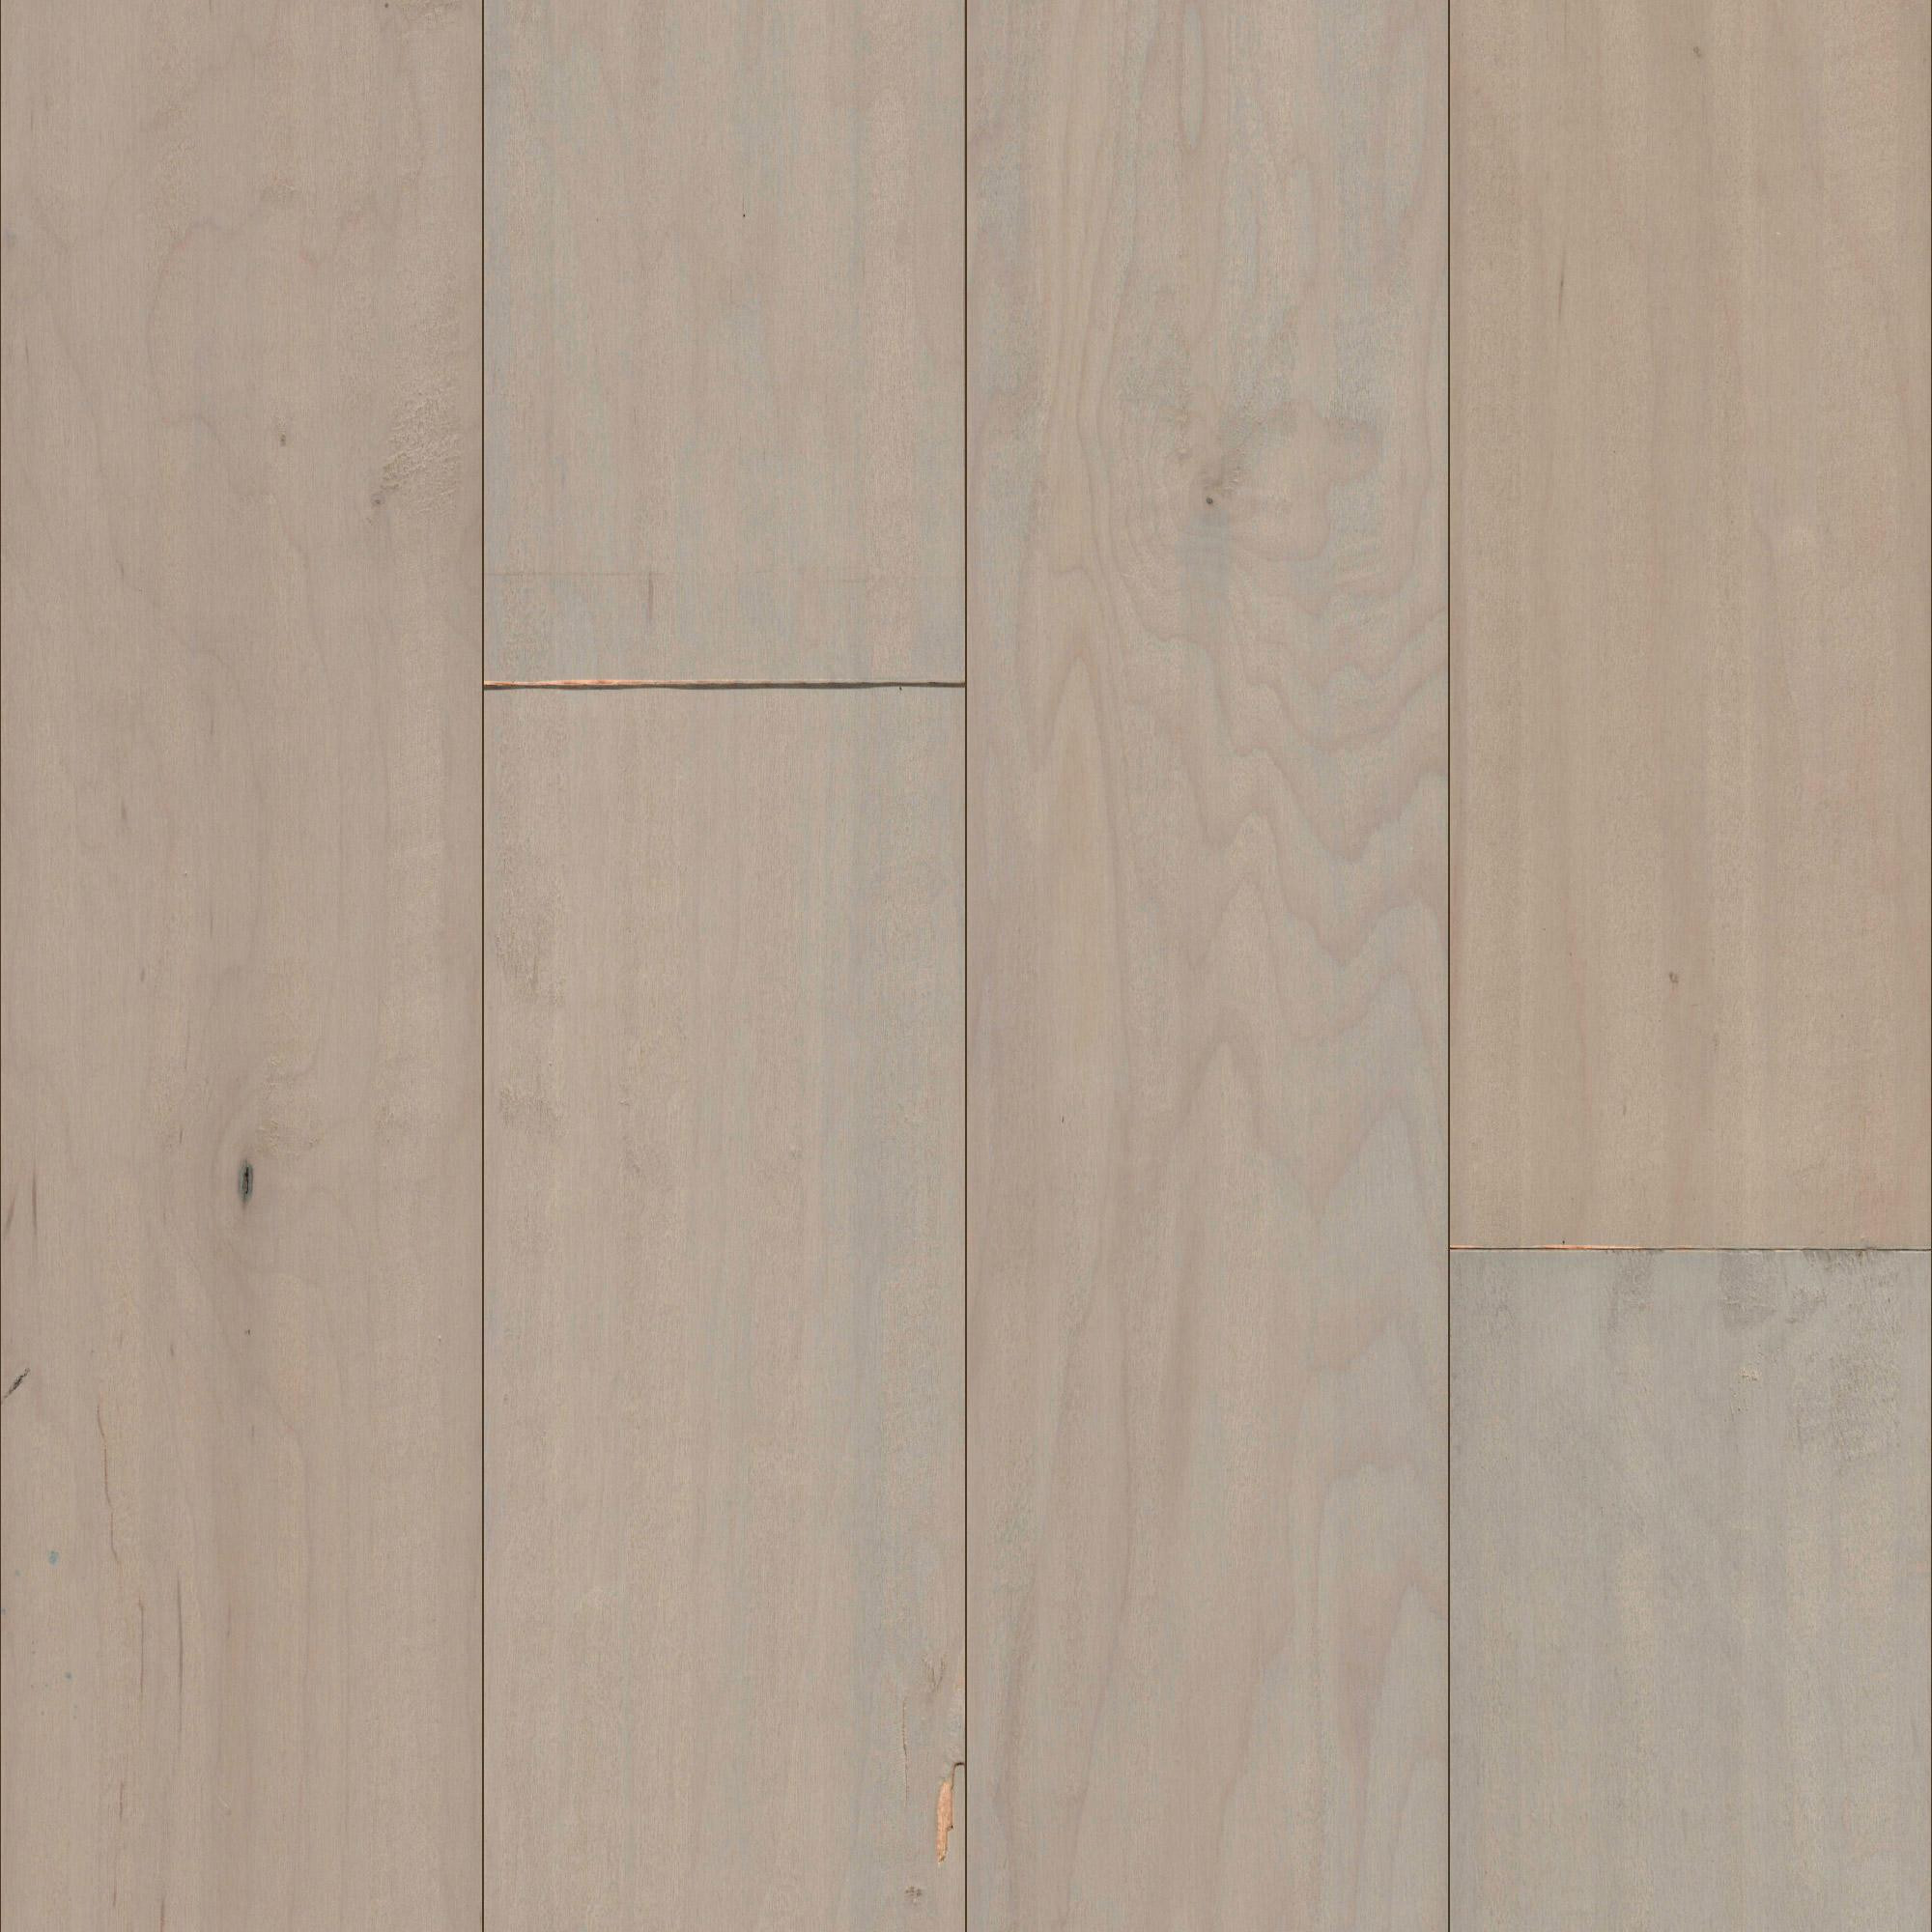 wide plank hickory engineered hardwood flooring of mullican lincolnshire sculpted maple frost 5 engineered hardwood with regard to mullican lincolnshire sculpted maple frost 5 engineered hardwood flooring